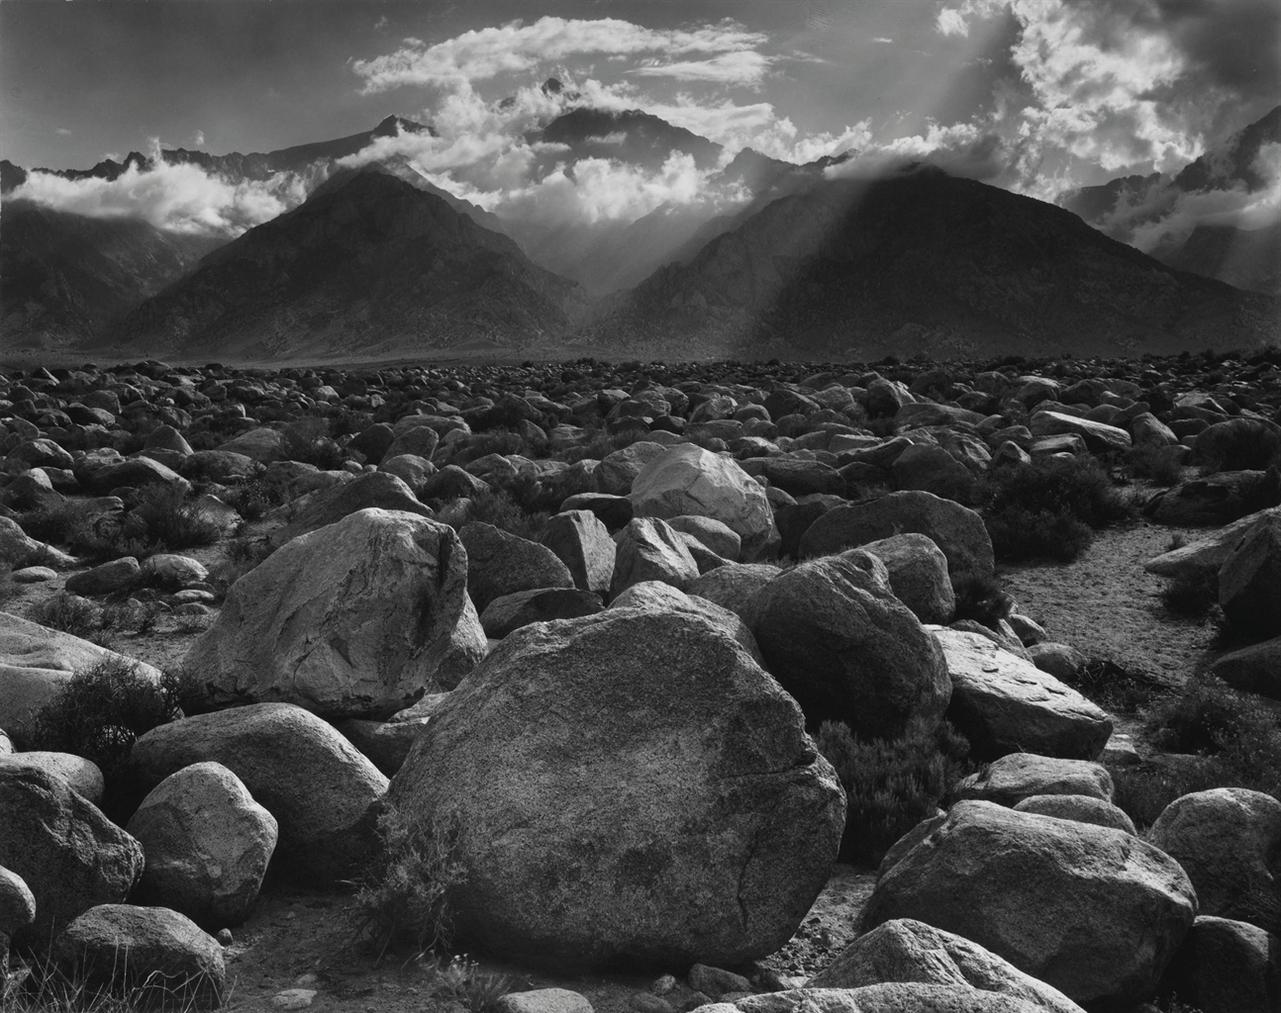 Ansel Adams-Mount Williamson, Sierra Nevada, From Manzanar, California-1944